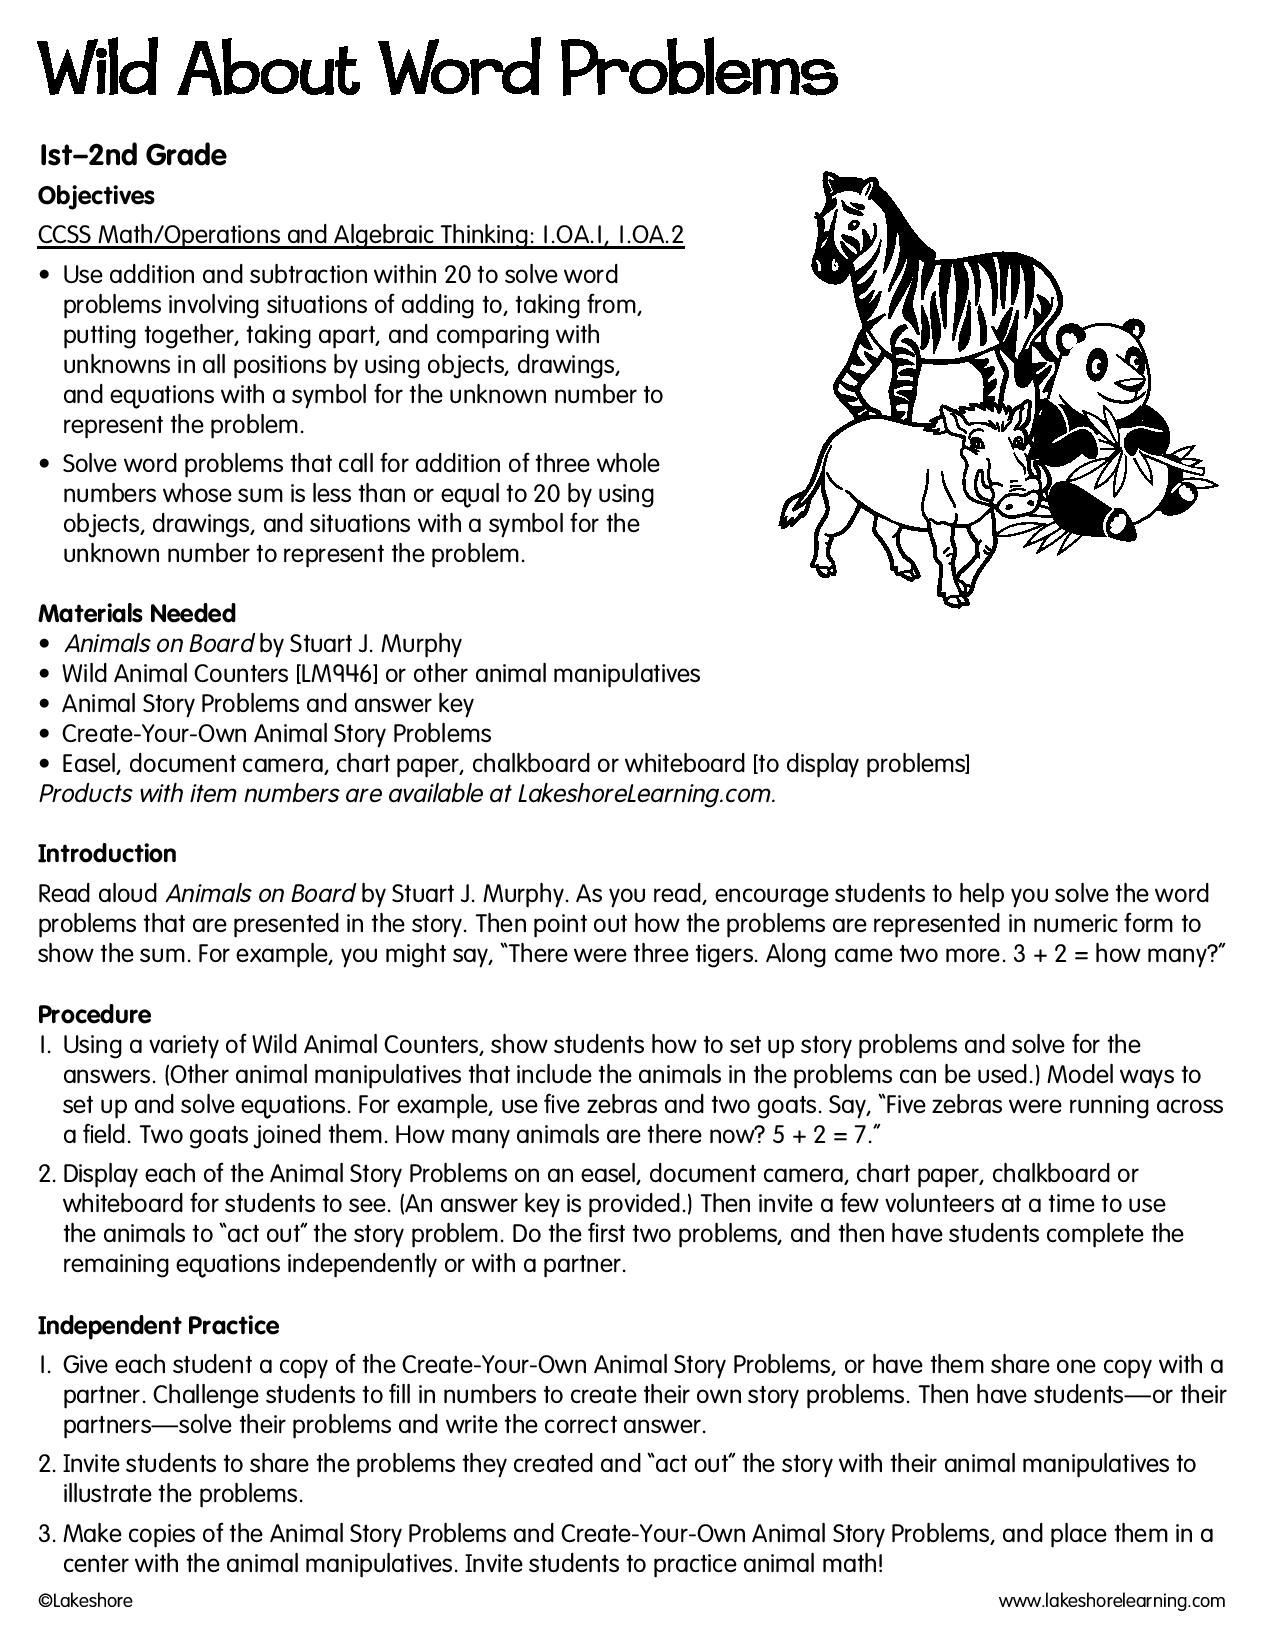 Wild About Word Problems Lessonplan Readingcomprehension